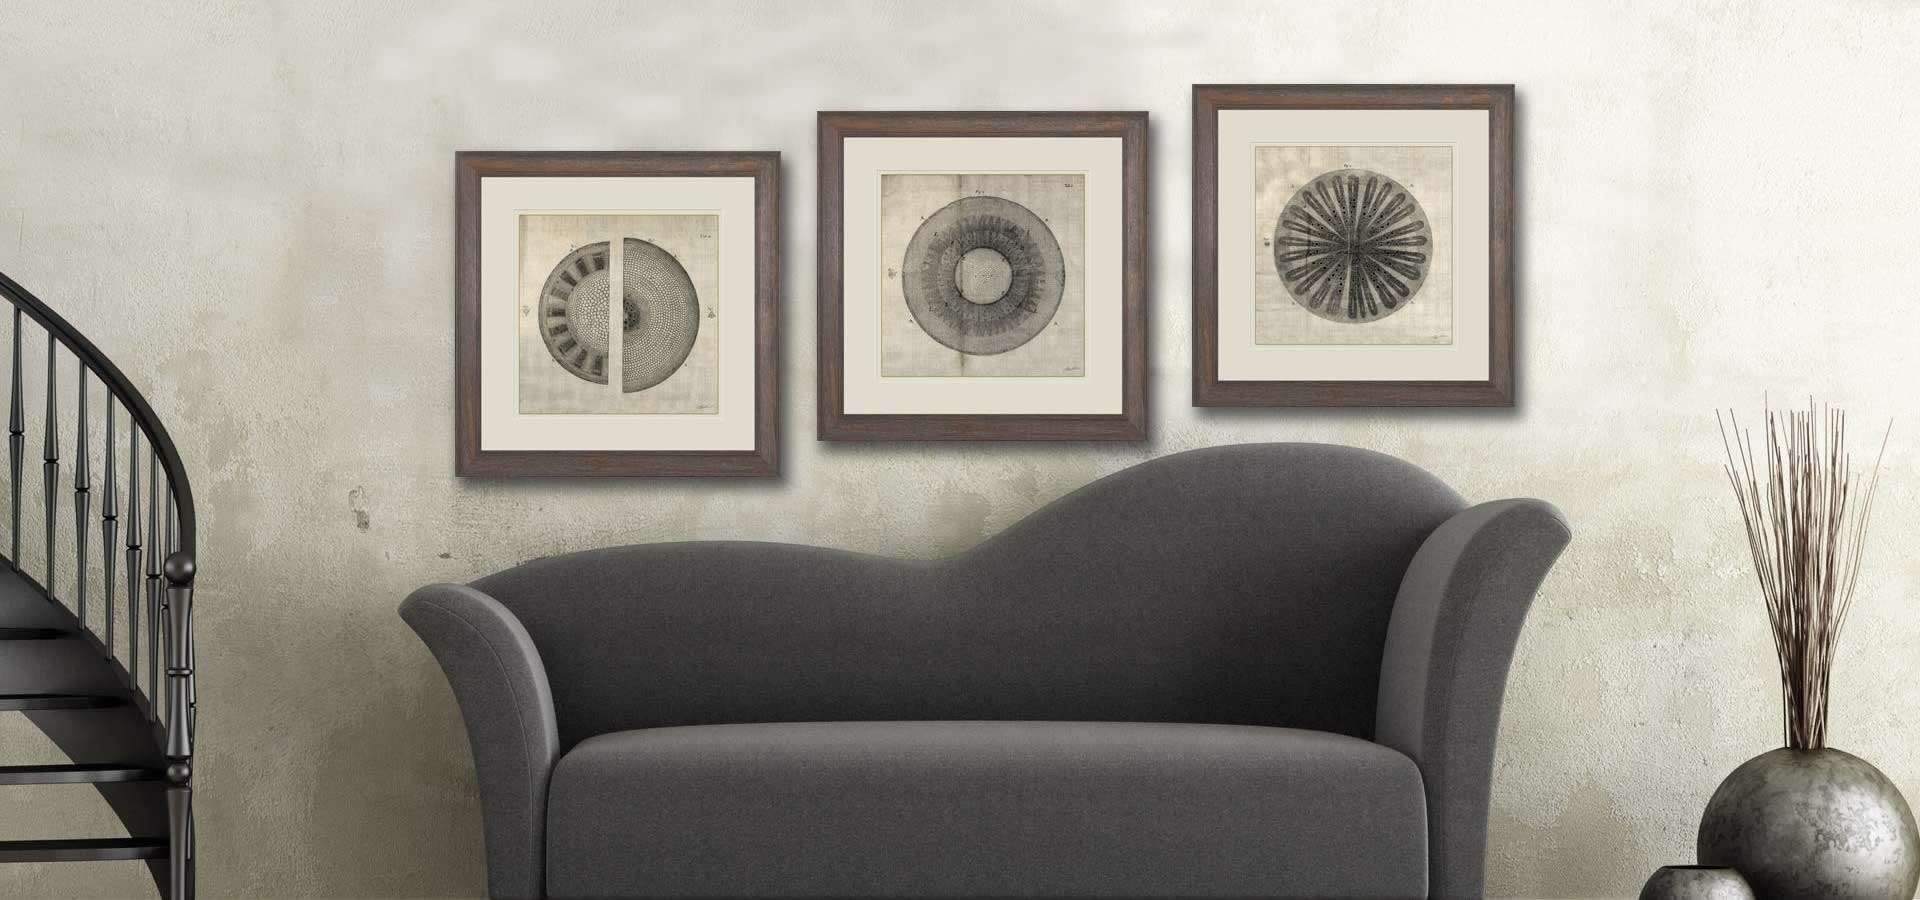 Studio Artique by Timothy's – Wall Decor Collection